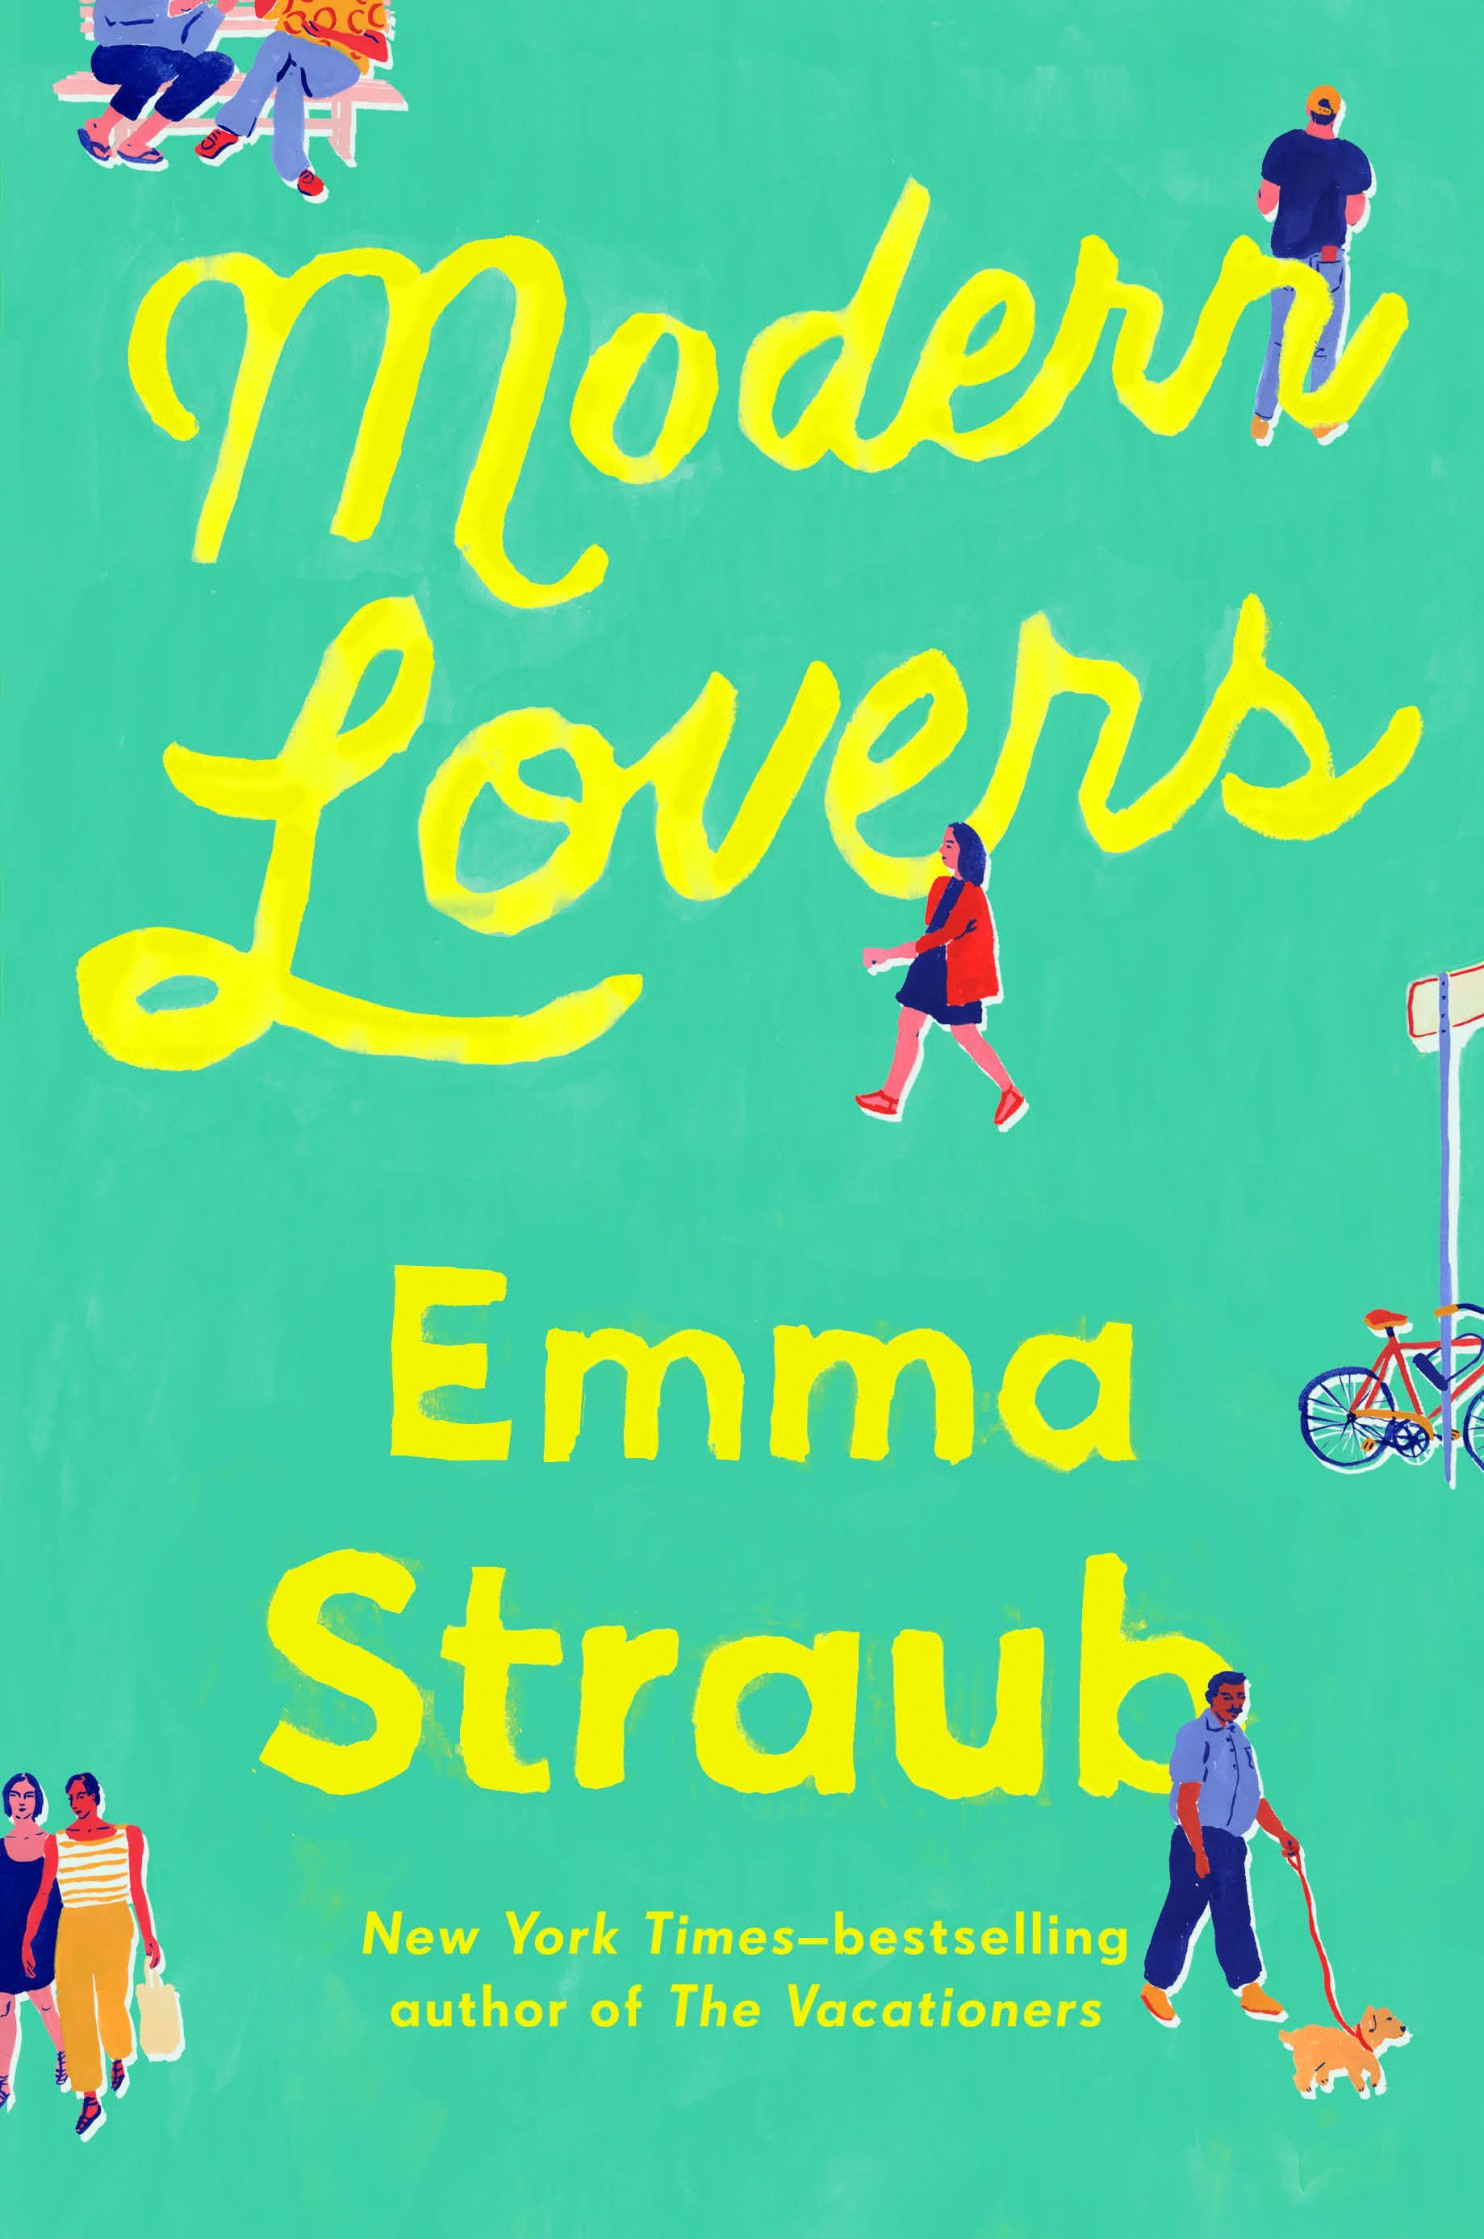 Book Cover - Modern Lovers by Emma Straub